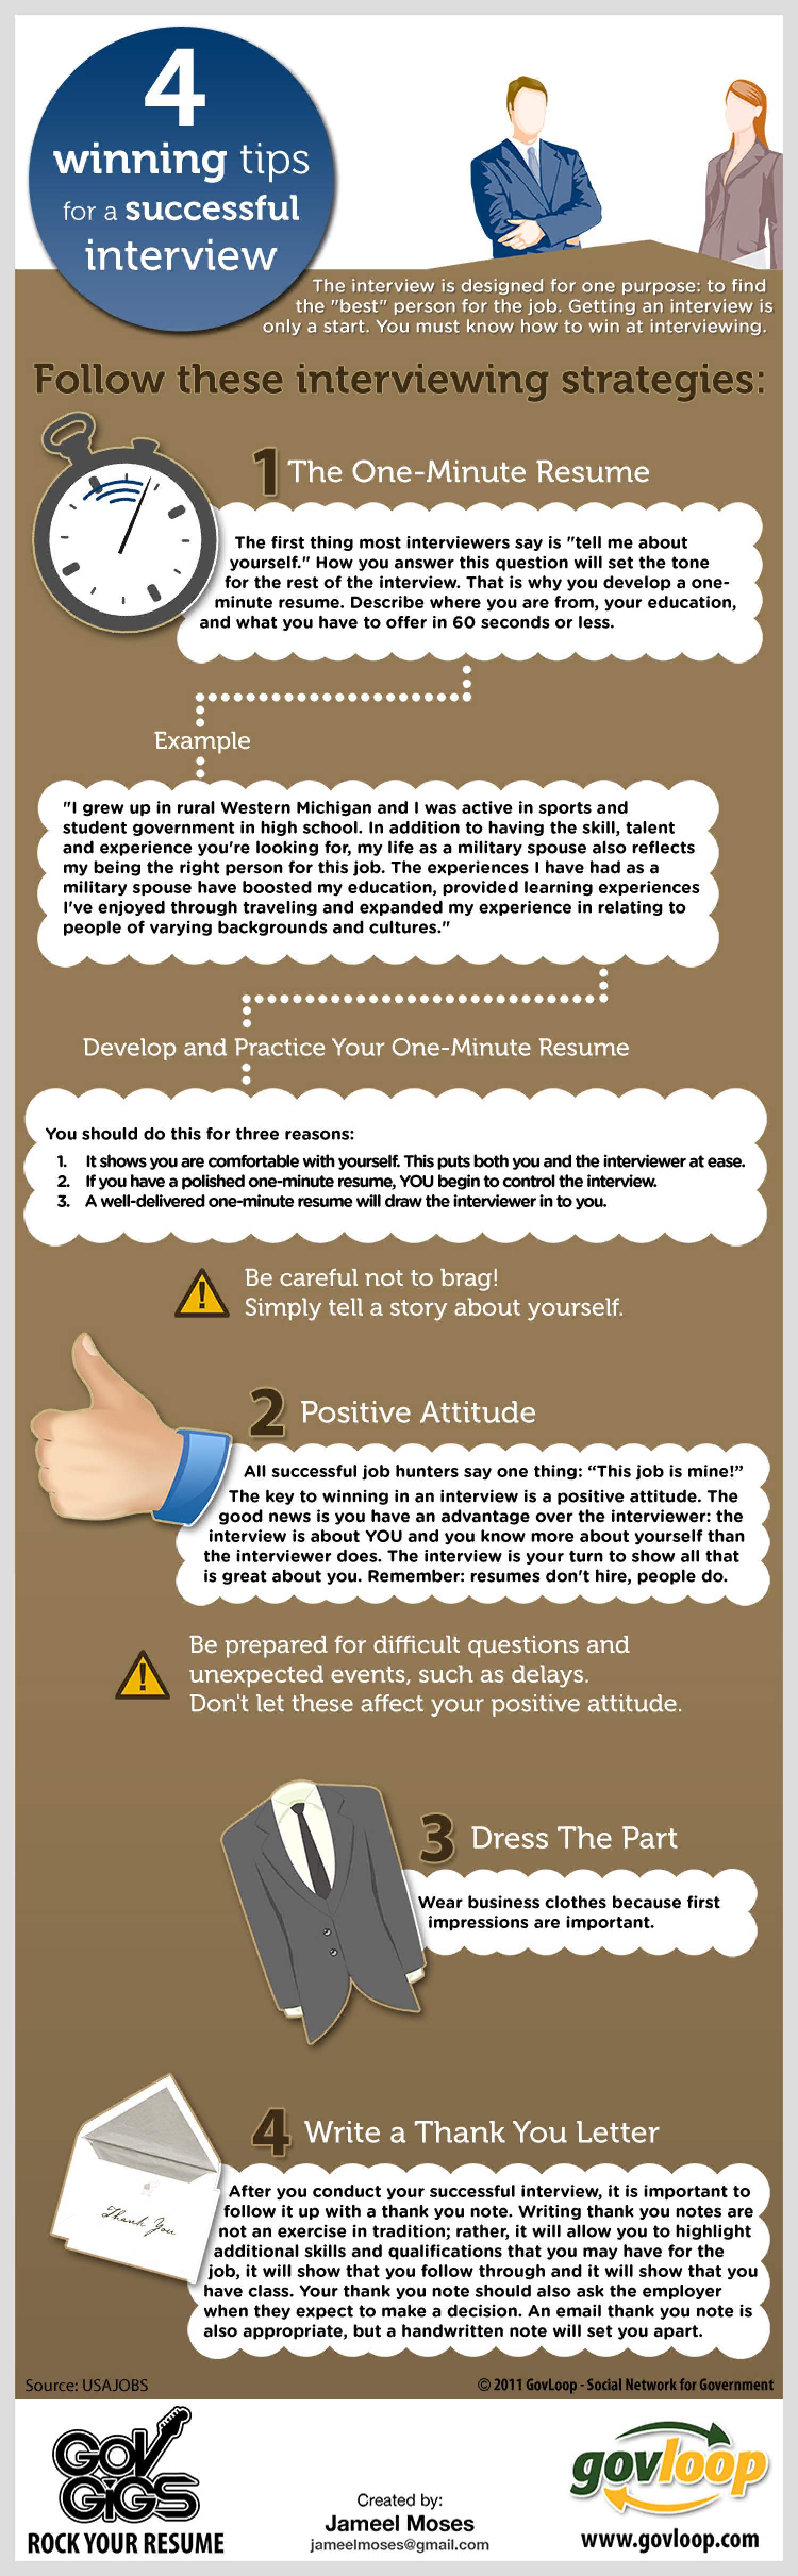 4 winning tips for a successful job interview visual ly 4 winning tips for a successful job interview infographic